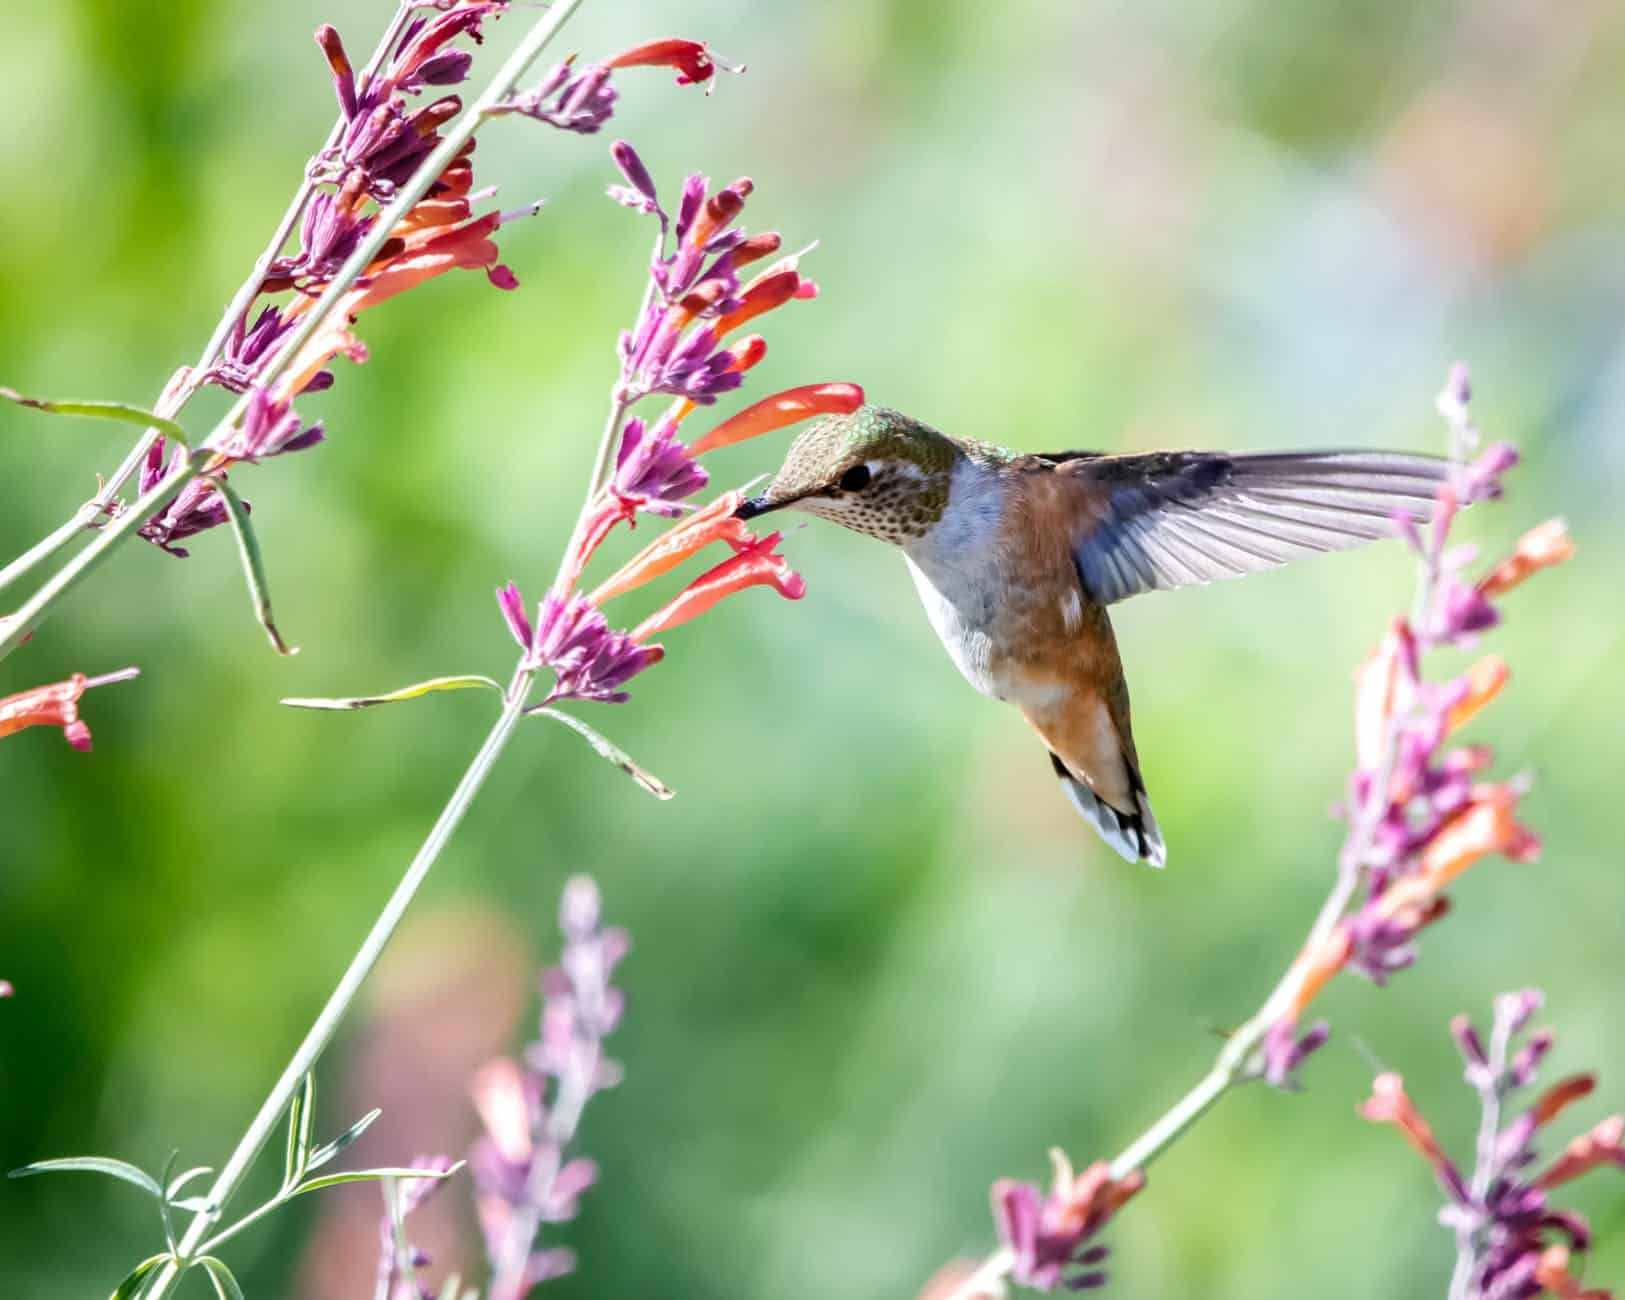 patio plant with a hummingbird